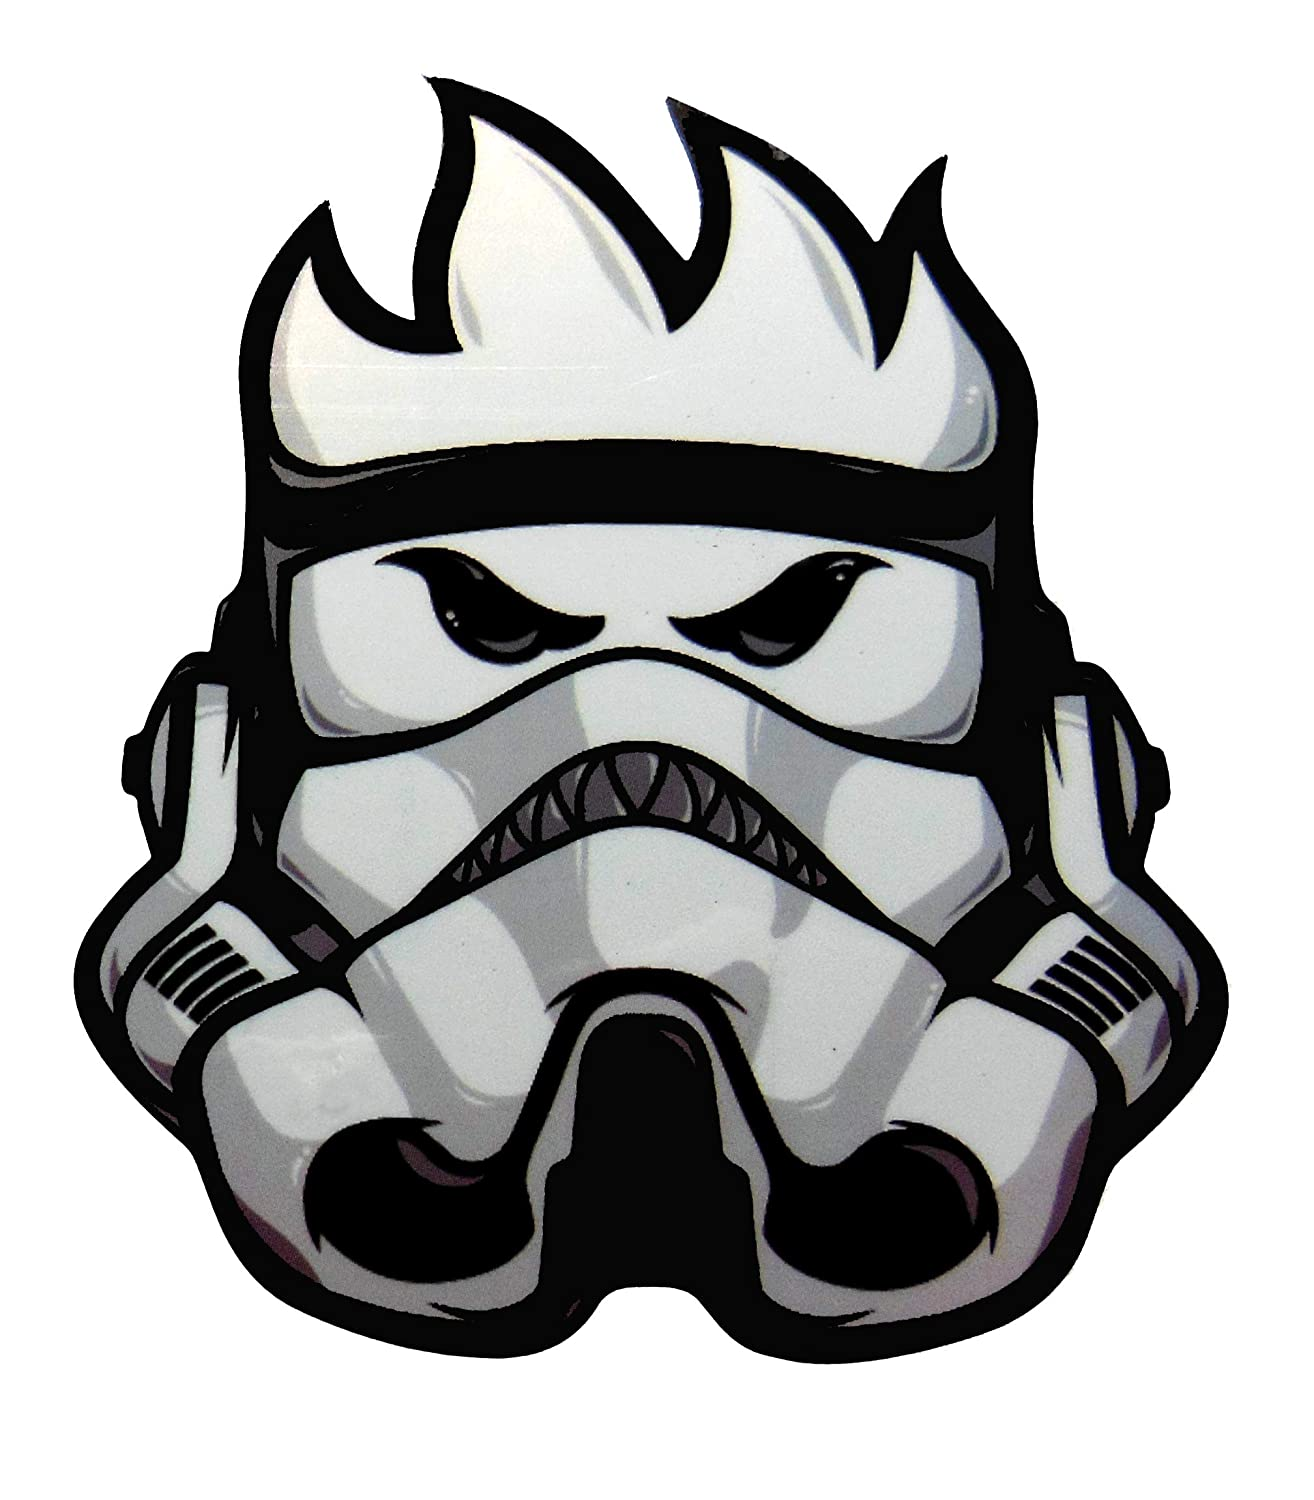 VATH Spitfire Flame Head Storm Trooper Sticker 60mmW x 75mmH / 2 7/8' H x 2 3/8' W [C56]